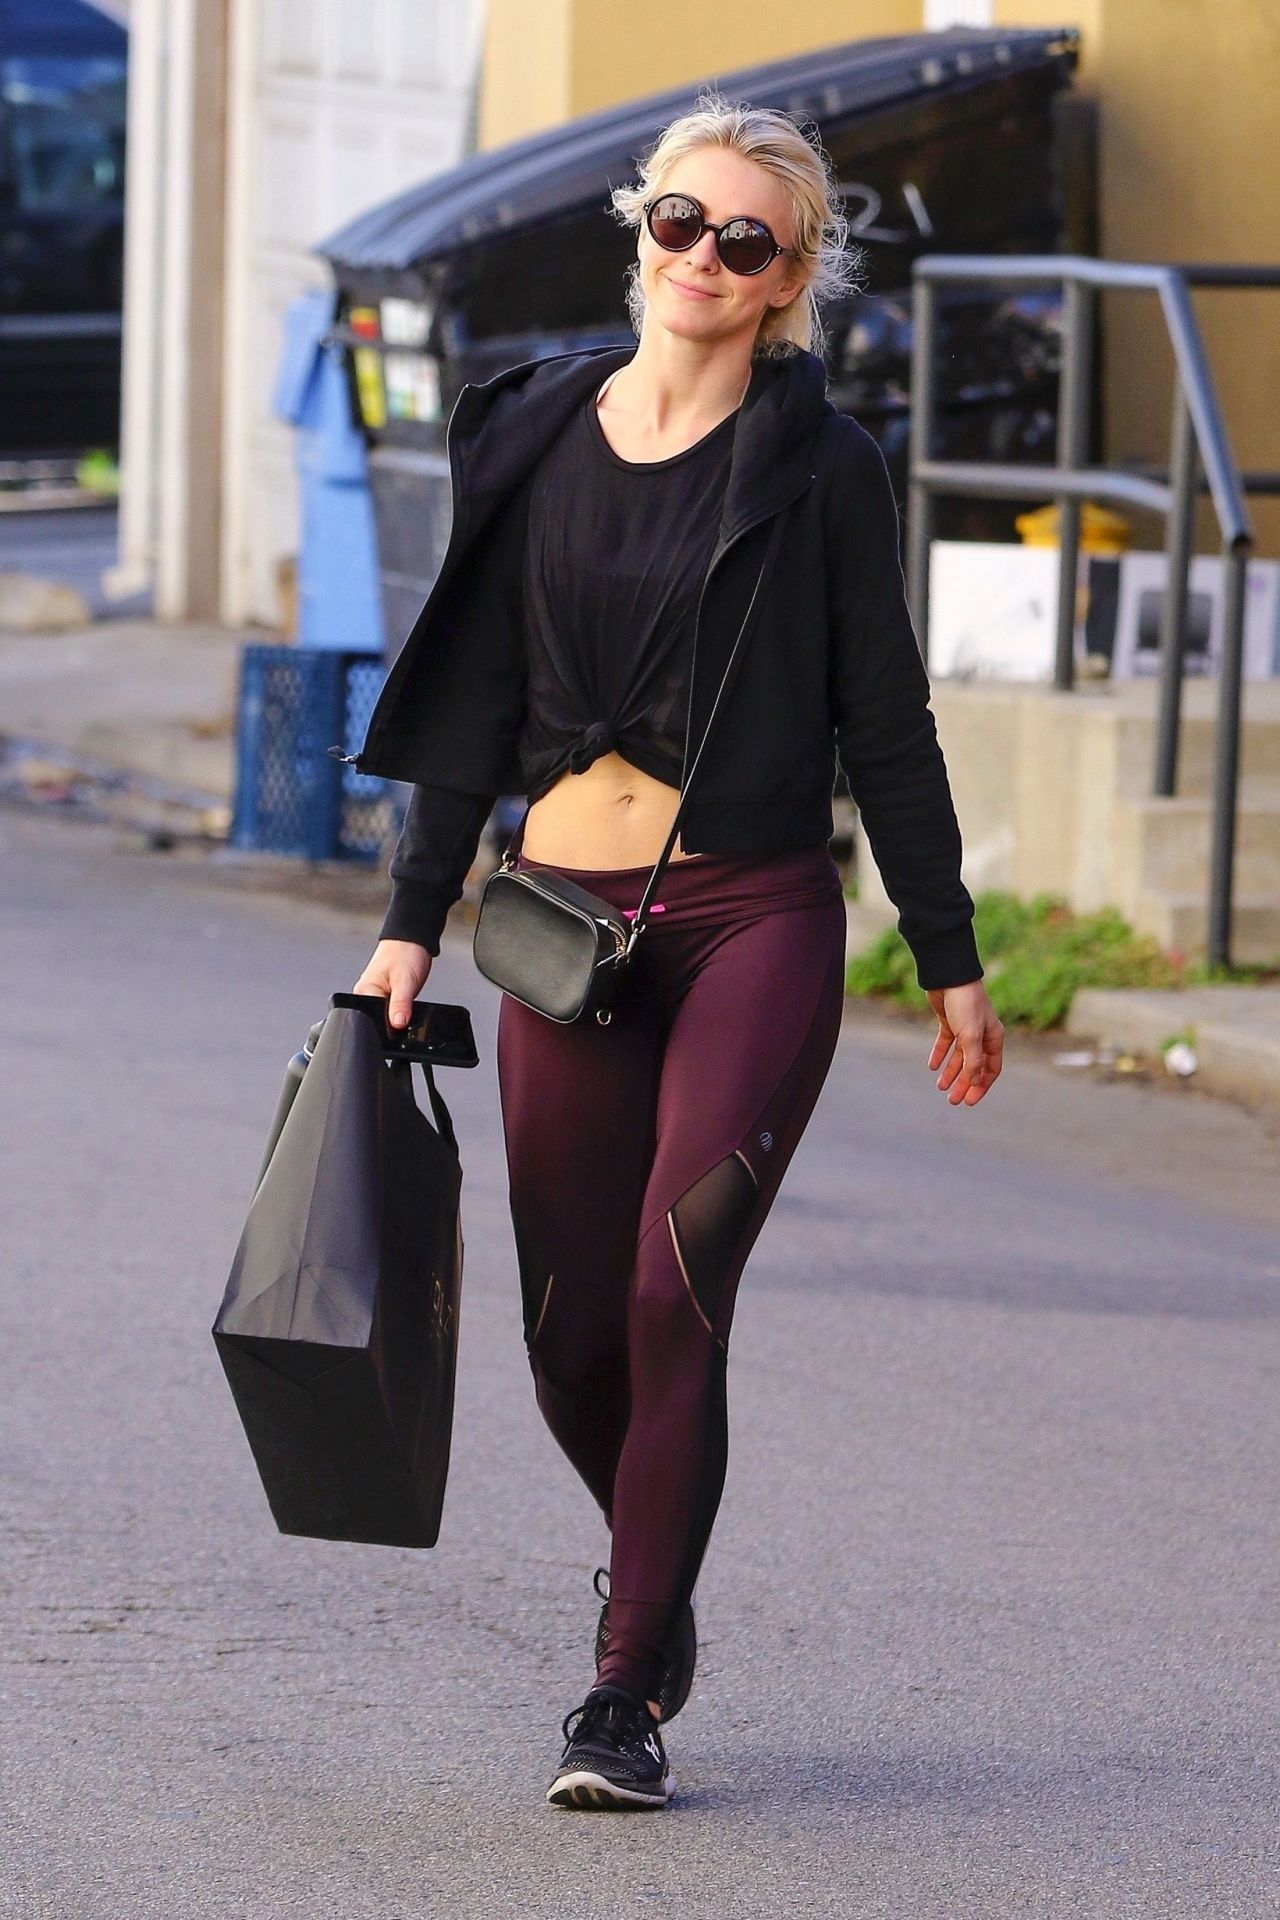 Julianne Hough After A Workout In Los Angeles 01 26 2018